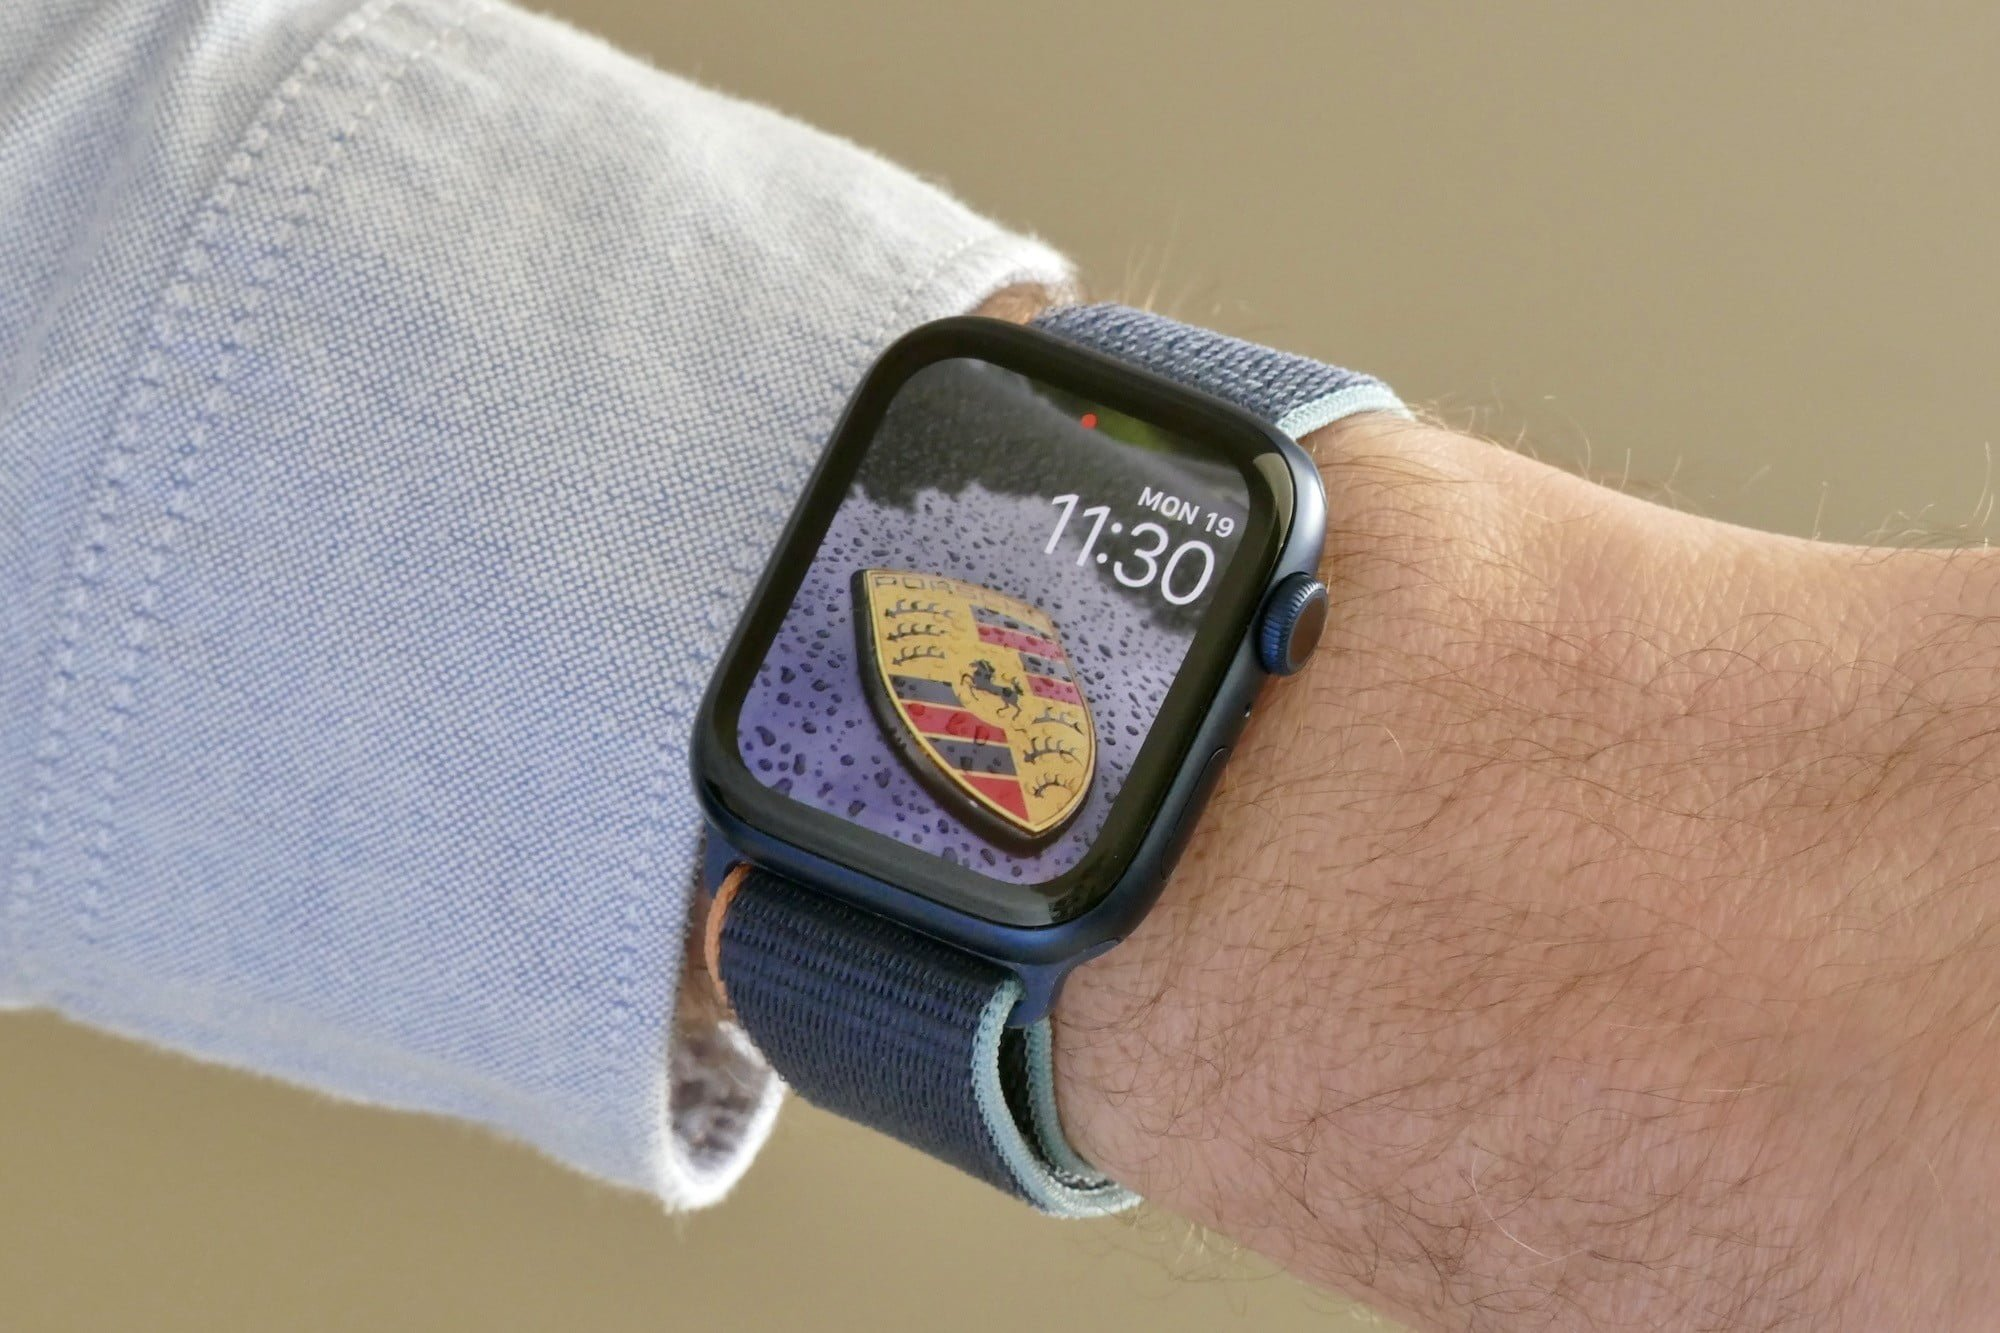 The best Apple Watch Series 6 deal is at Walmart right now for Prime Day